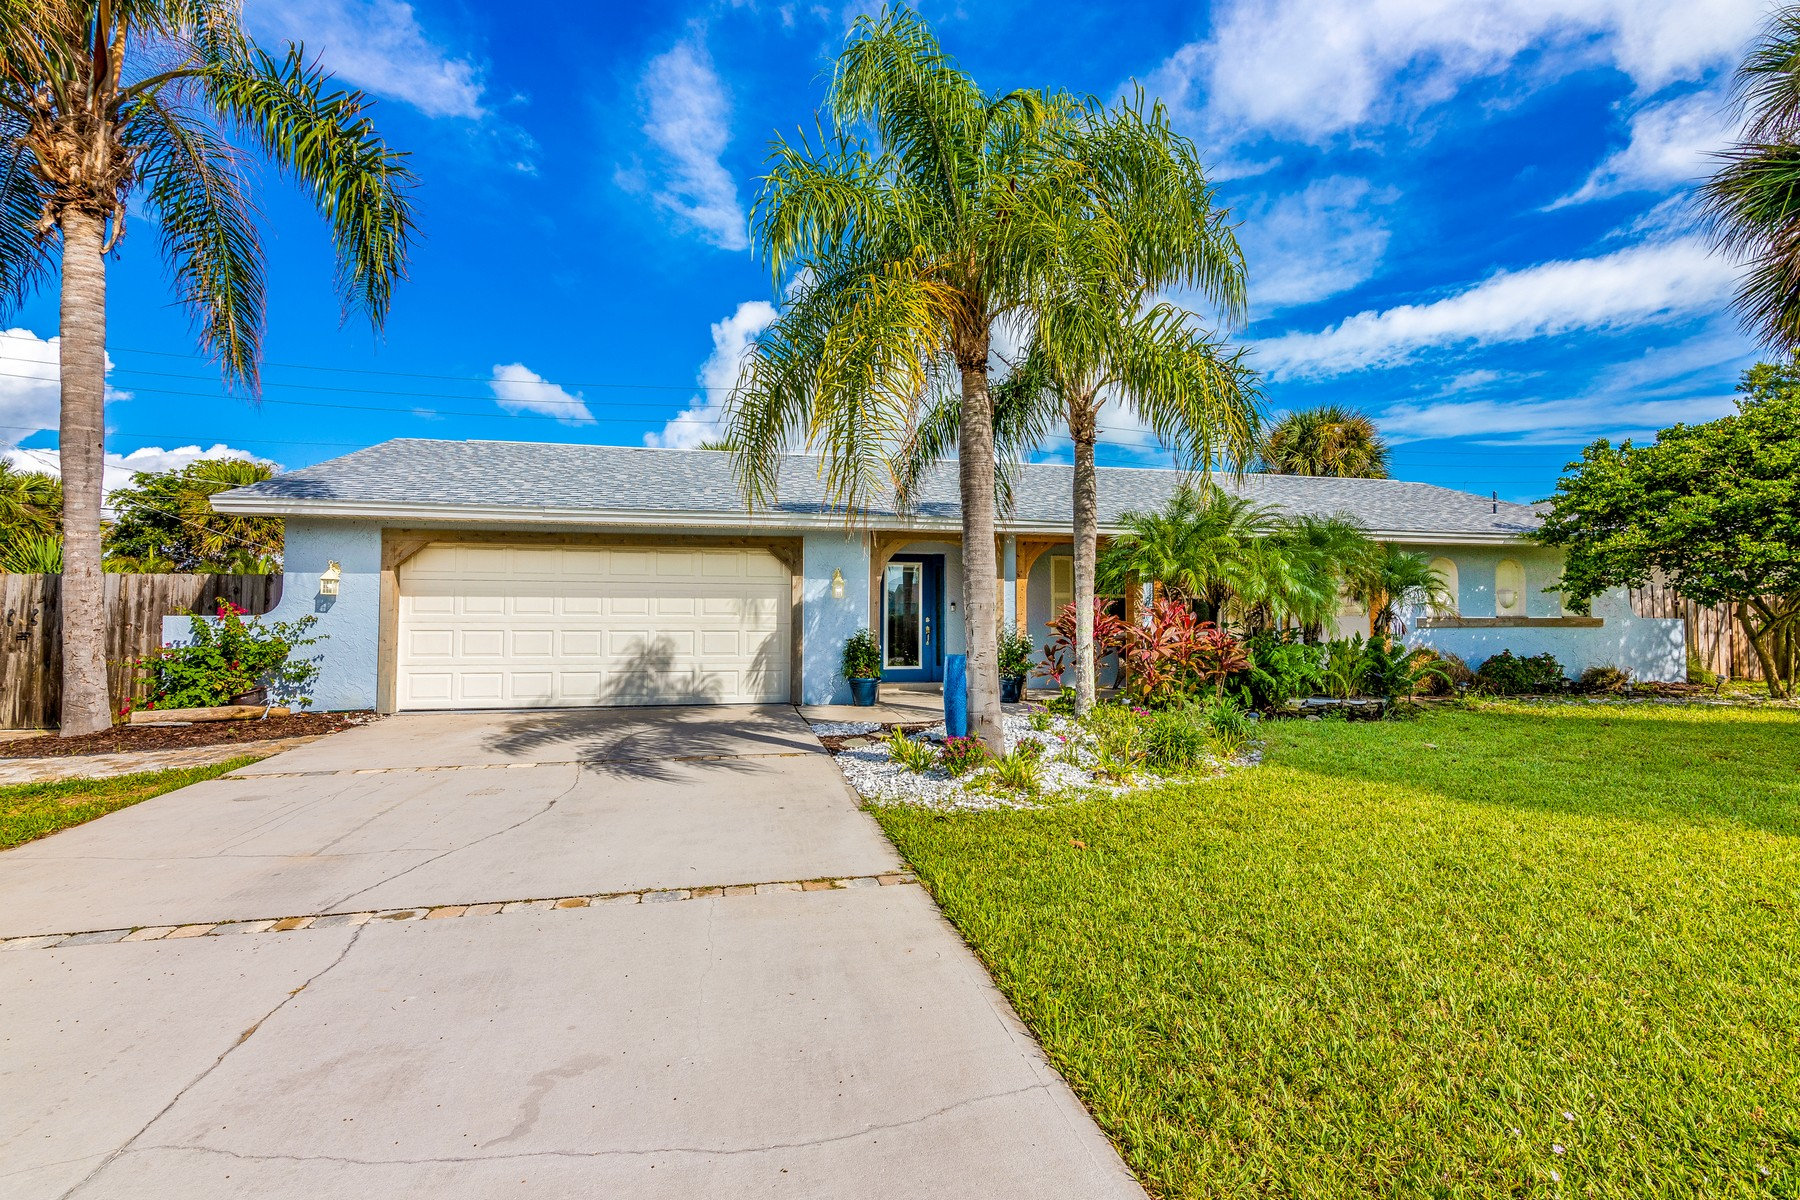 Property vì Bán tại Indialantic By The Sea 132 Seventh Avenue Indialantic, Florida 32903 Hoa Kỳ